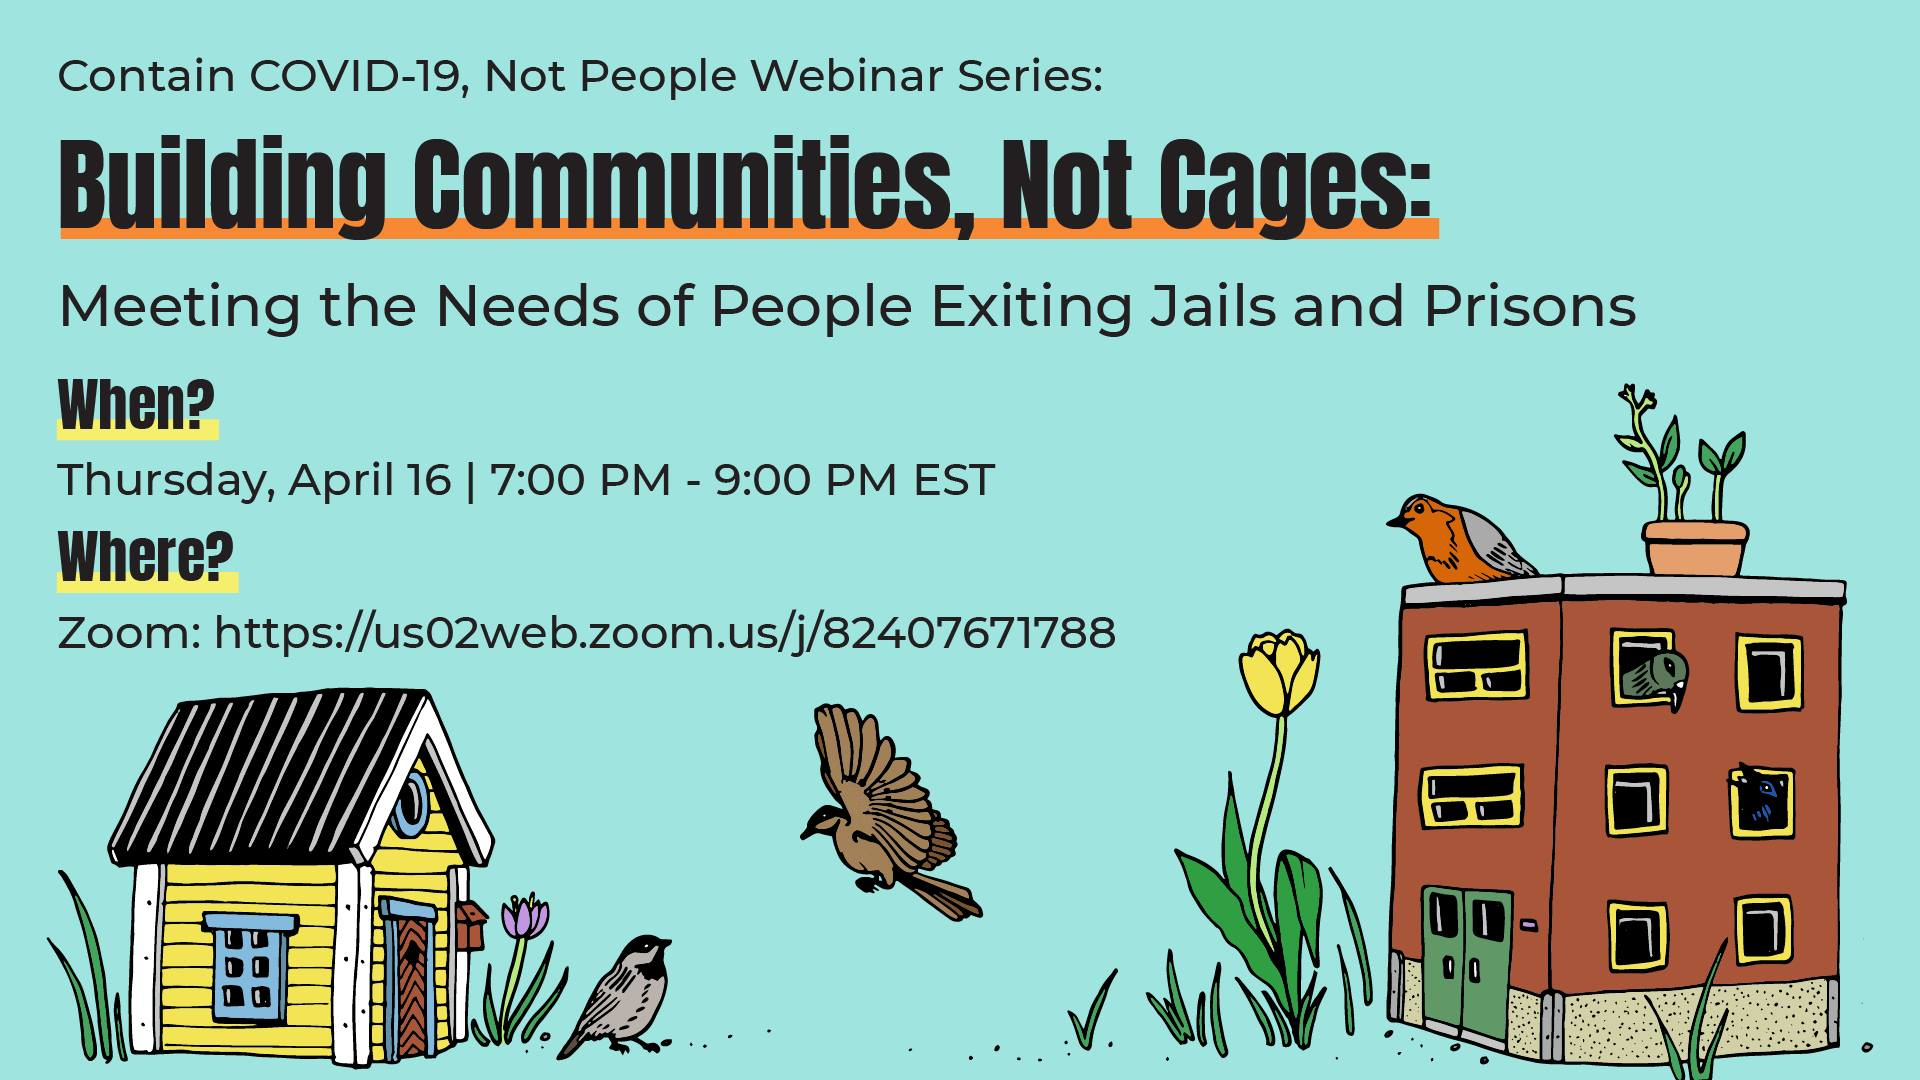 build communities not cages webinar poster with birds living in houses and apartment buildings sharing worms